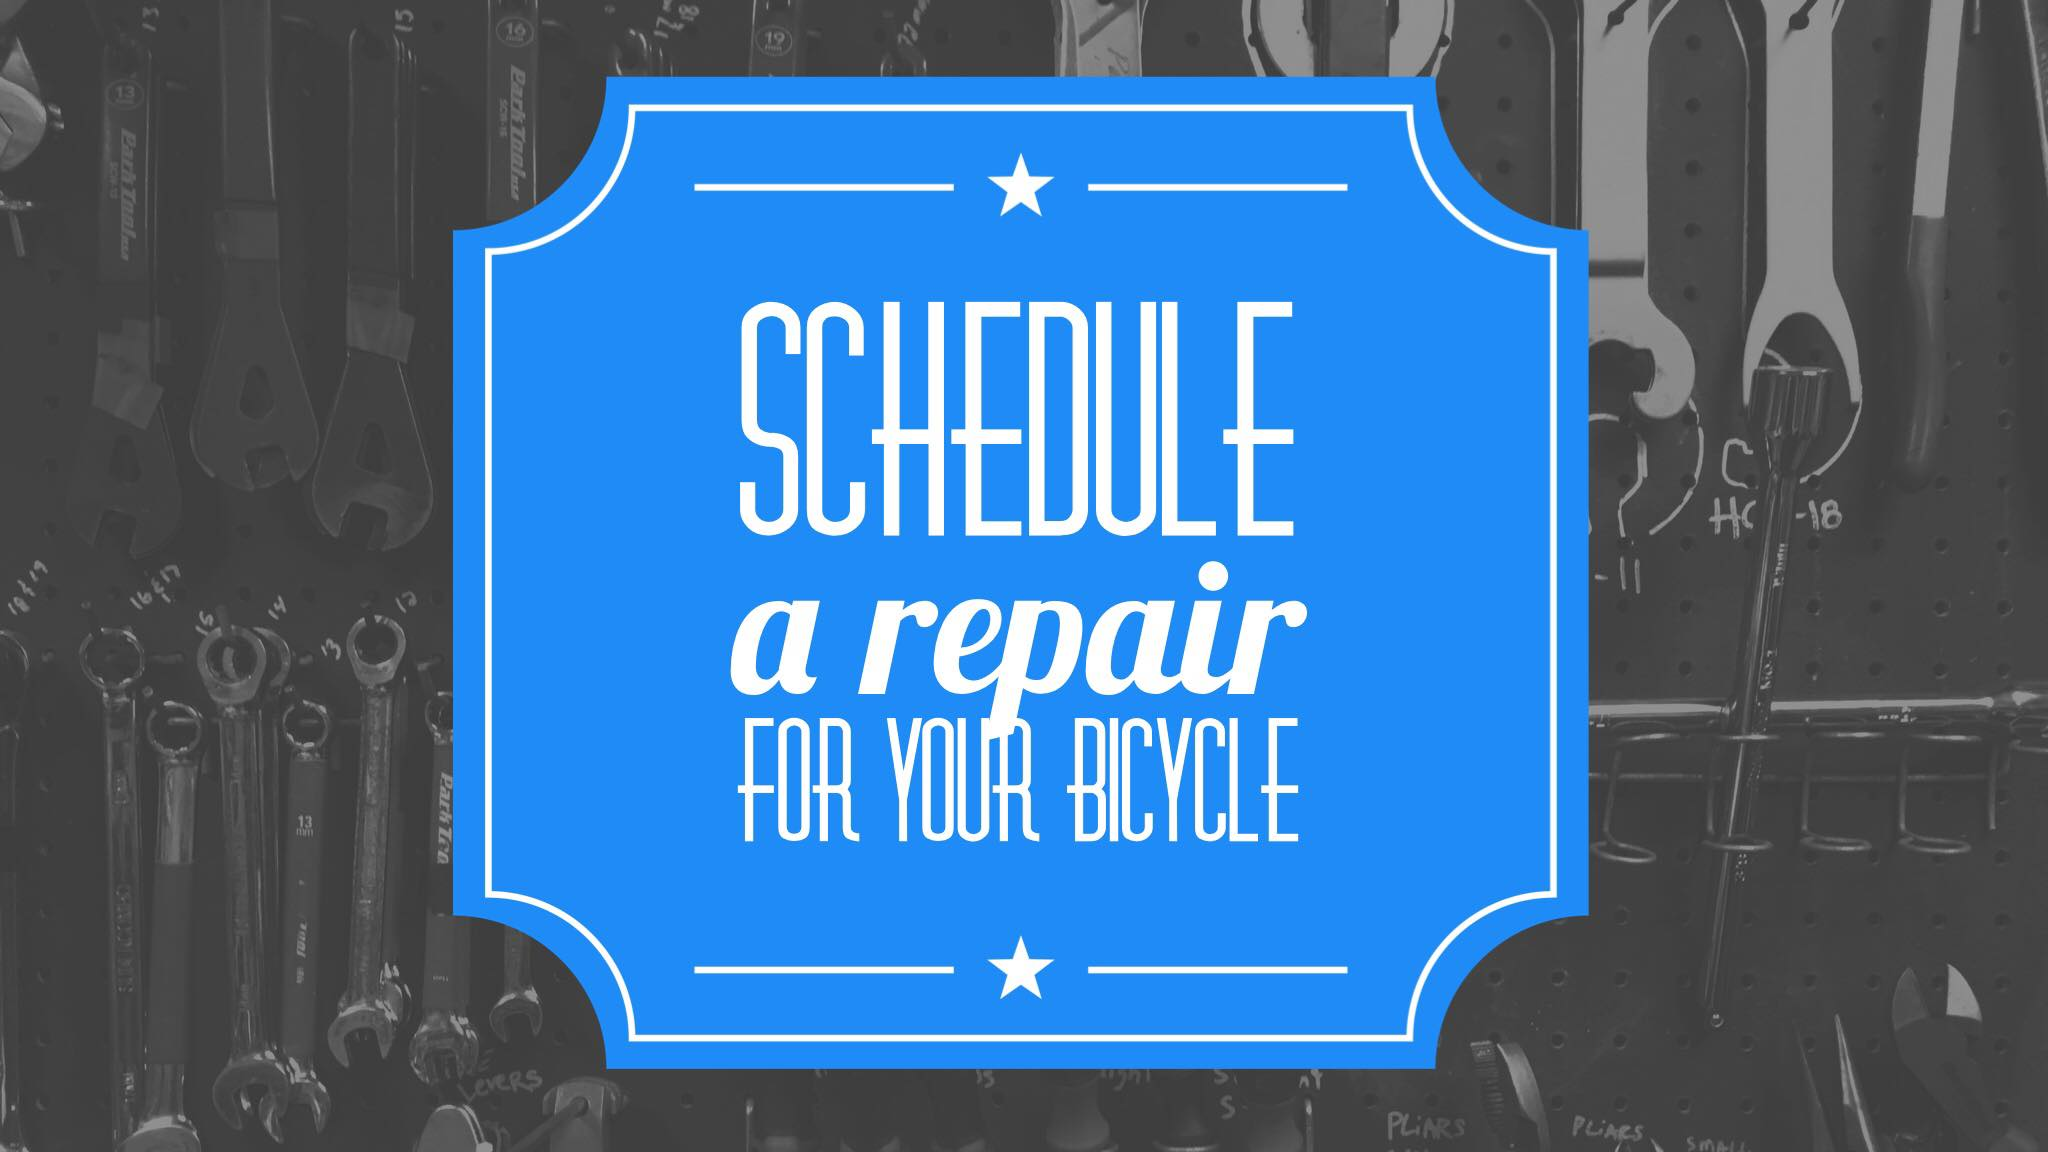 SCHEDULE A REPAIR FOR YOUR BICYCLE